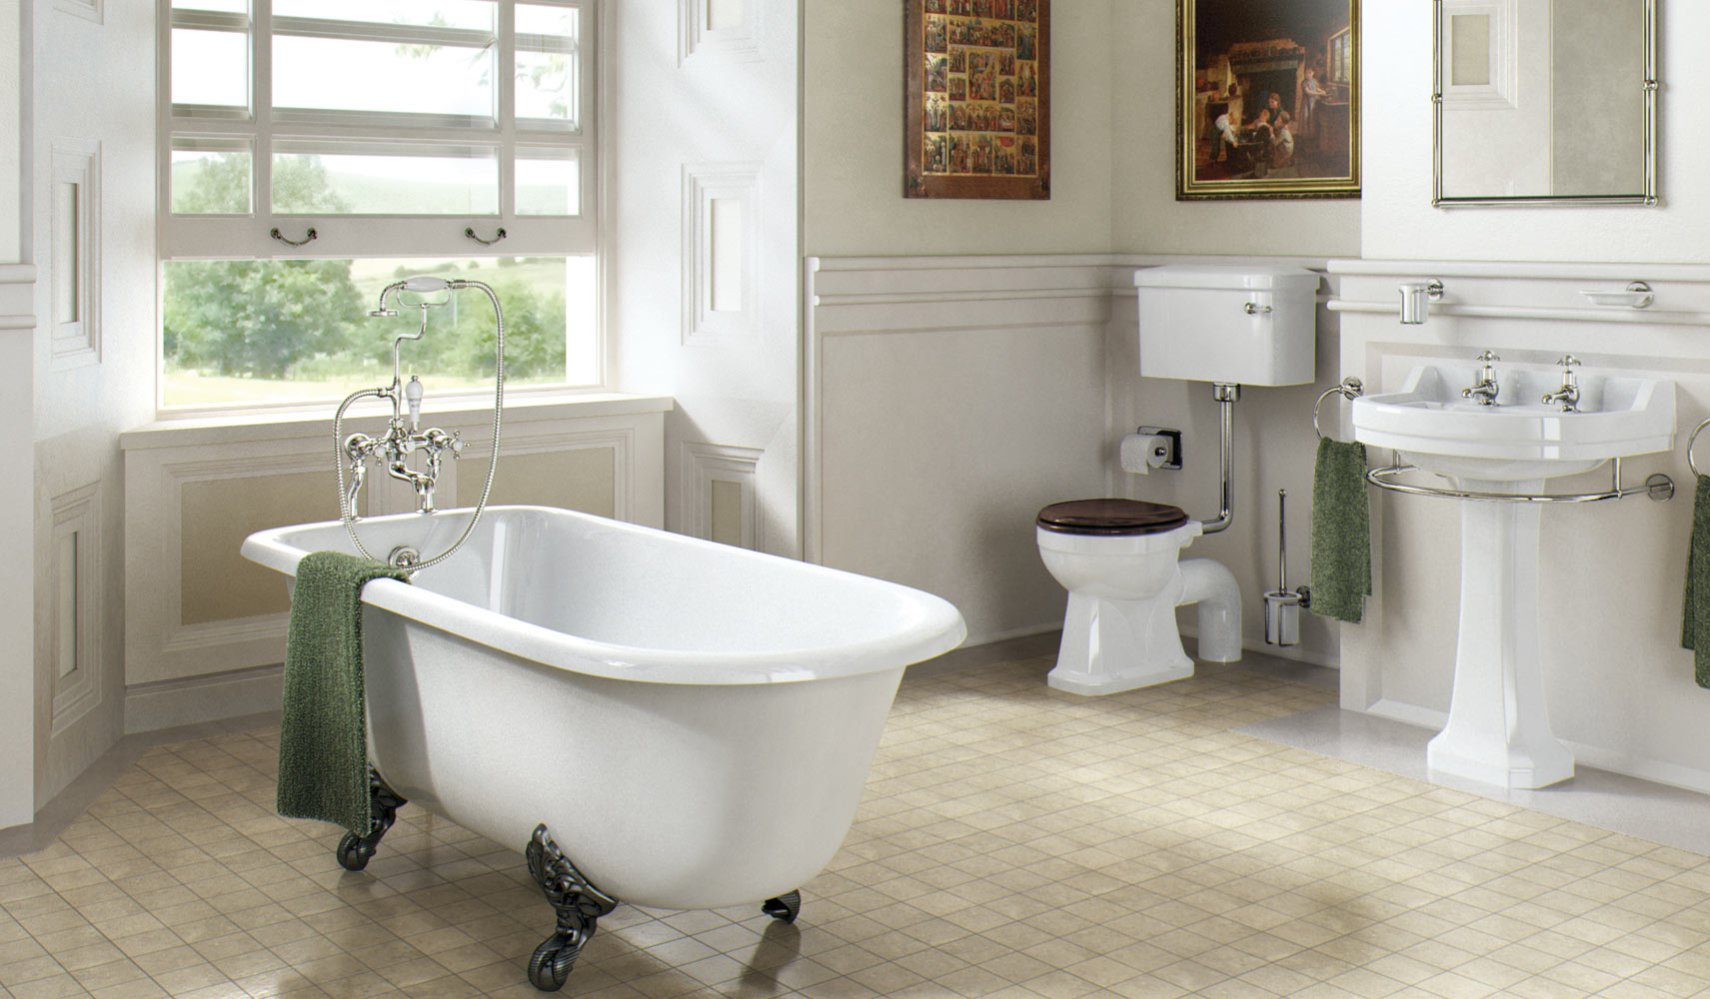 Oxford Bathroom Suite - Bathroom Ideas | Victorian Plumbing UK